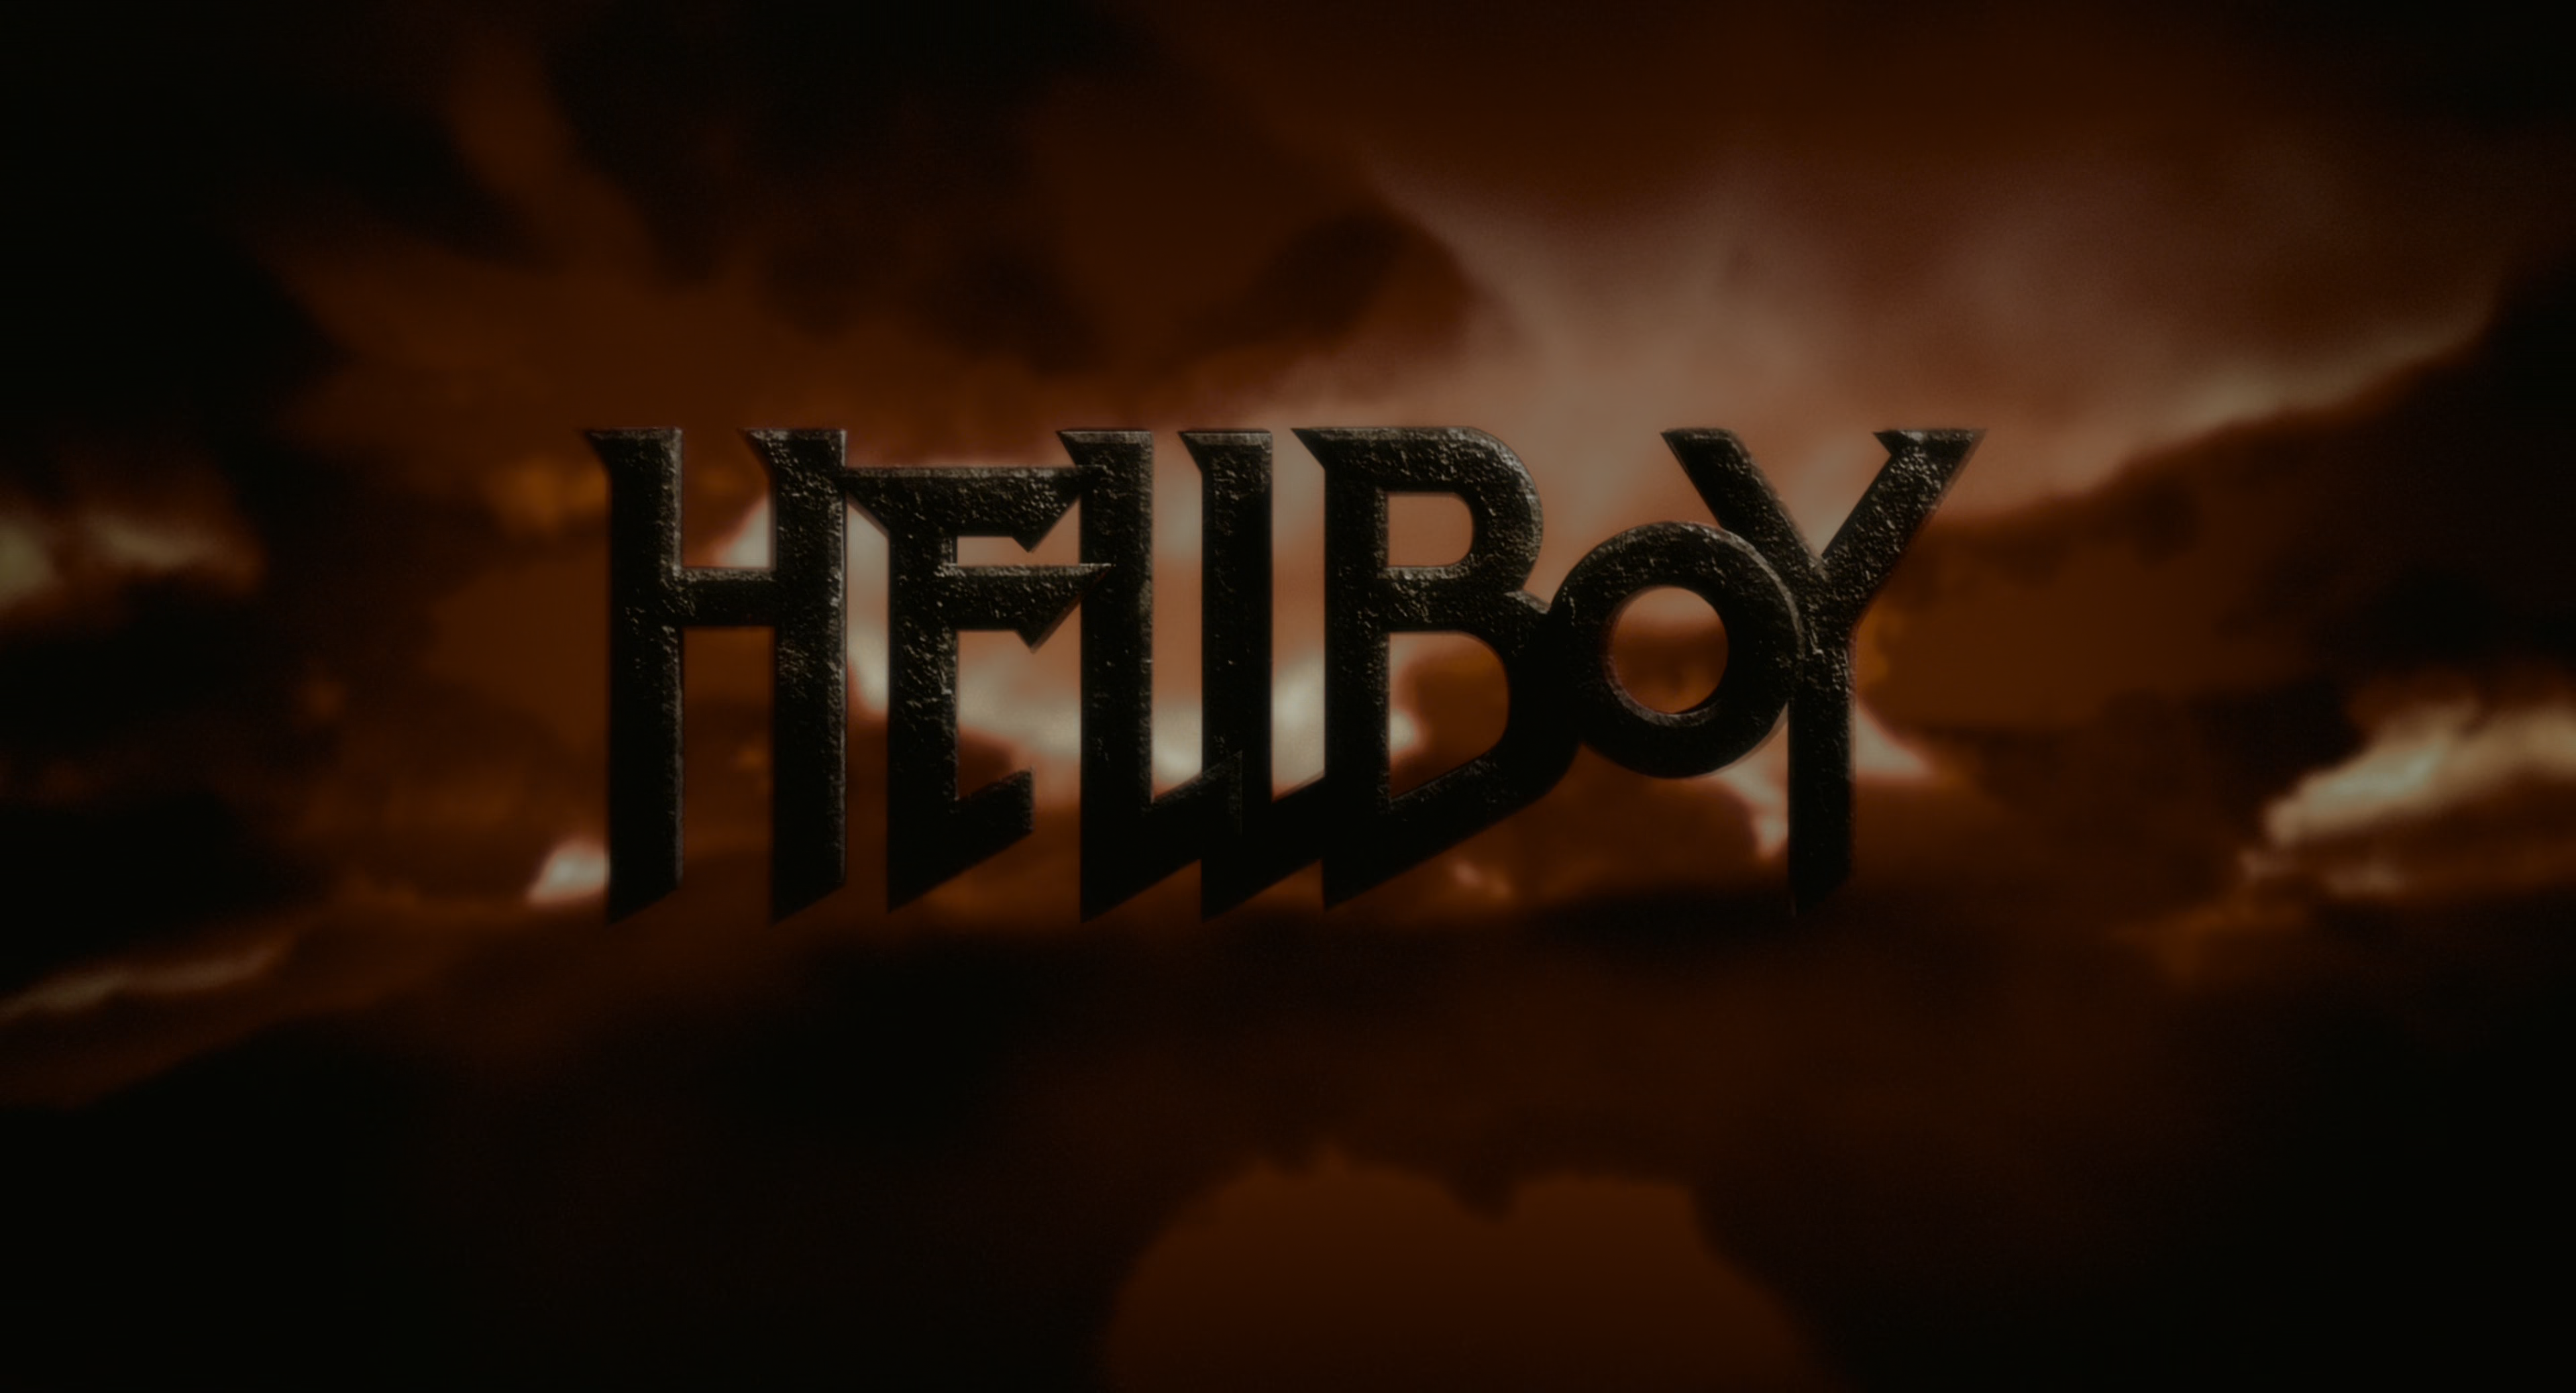 Hellboy 2004 DC 2160p UHD BluRay TrueHD 7.1 x265-IAMABLE